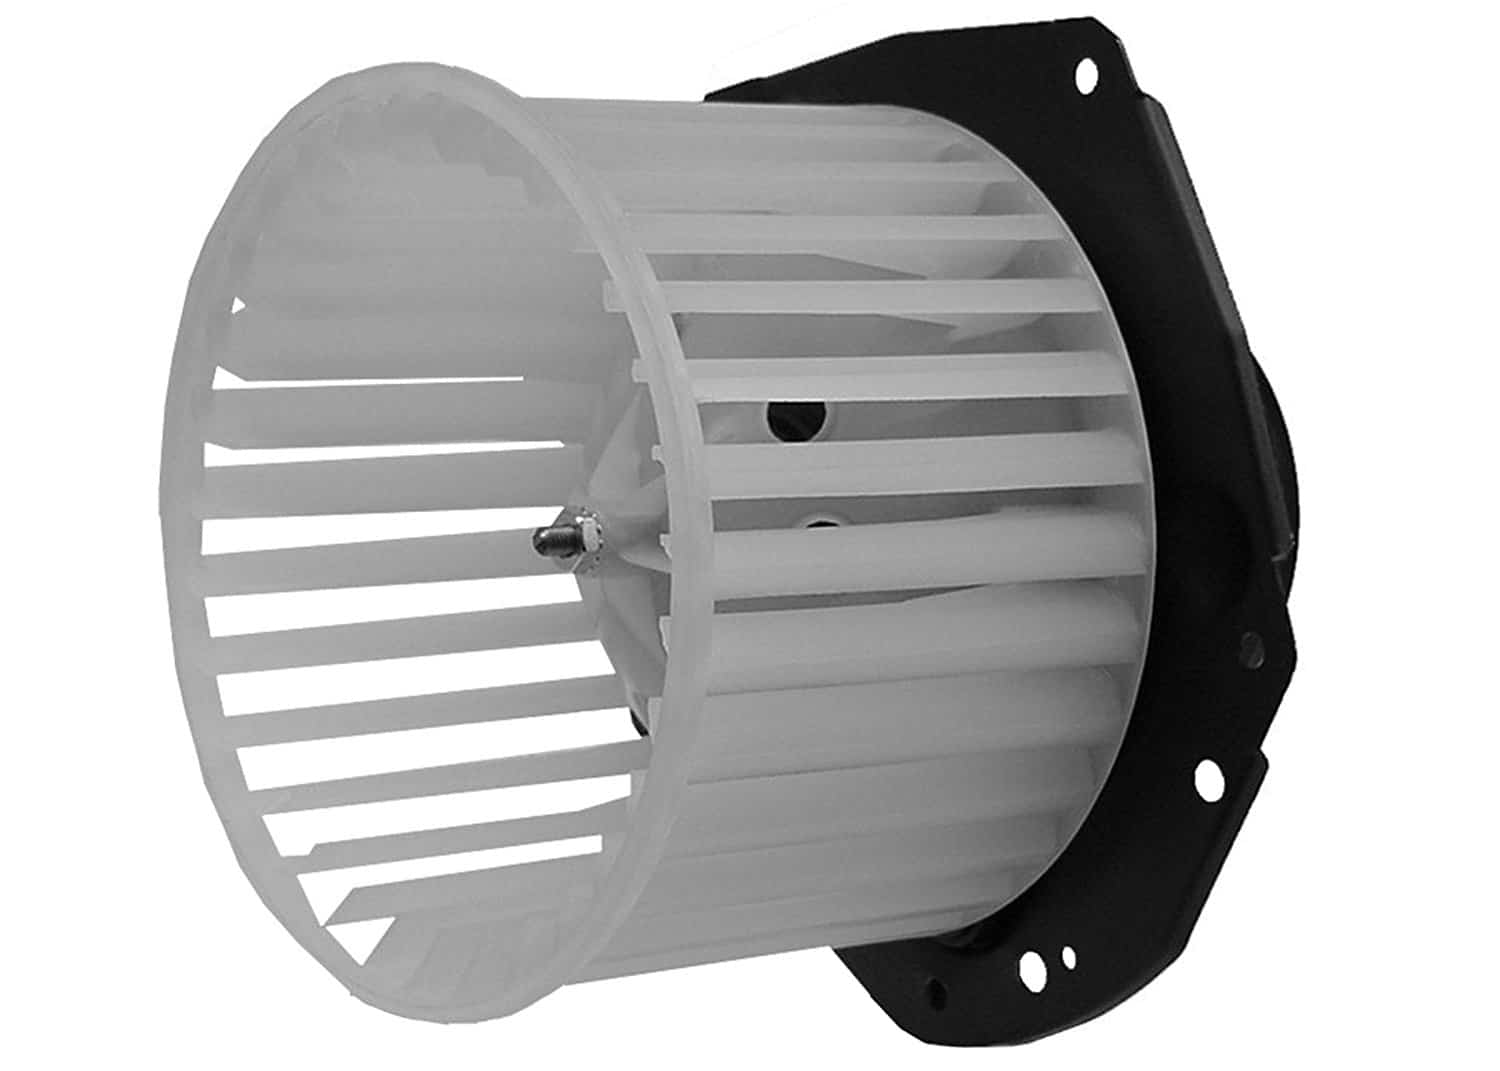 Air Blower Work : Best affordable blower motor review buying guide